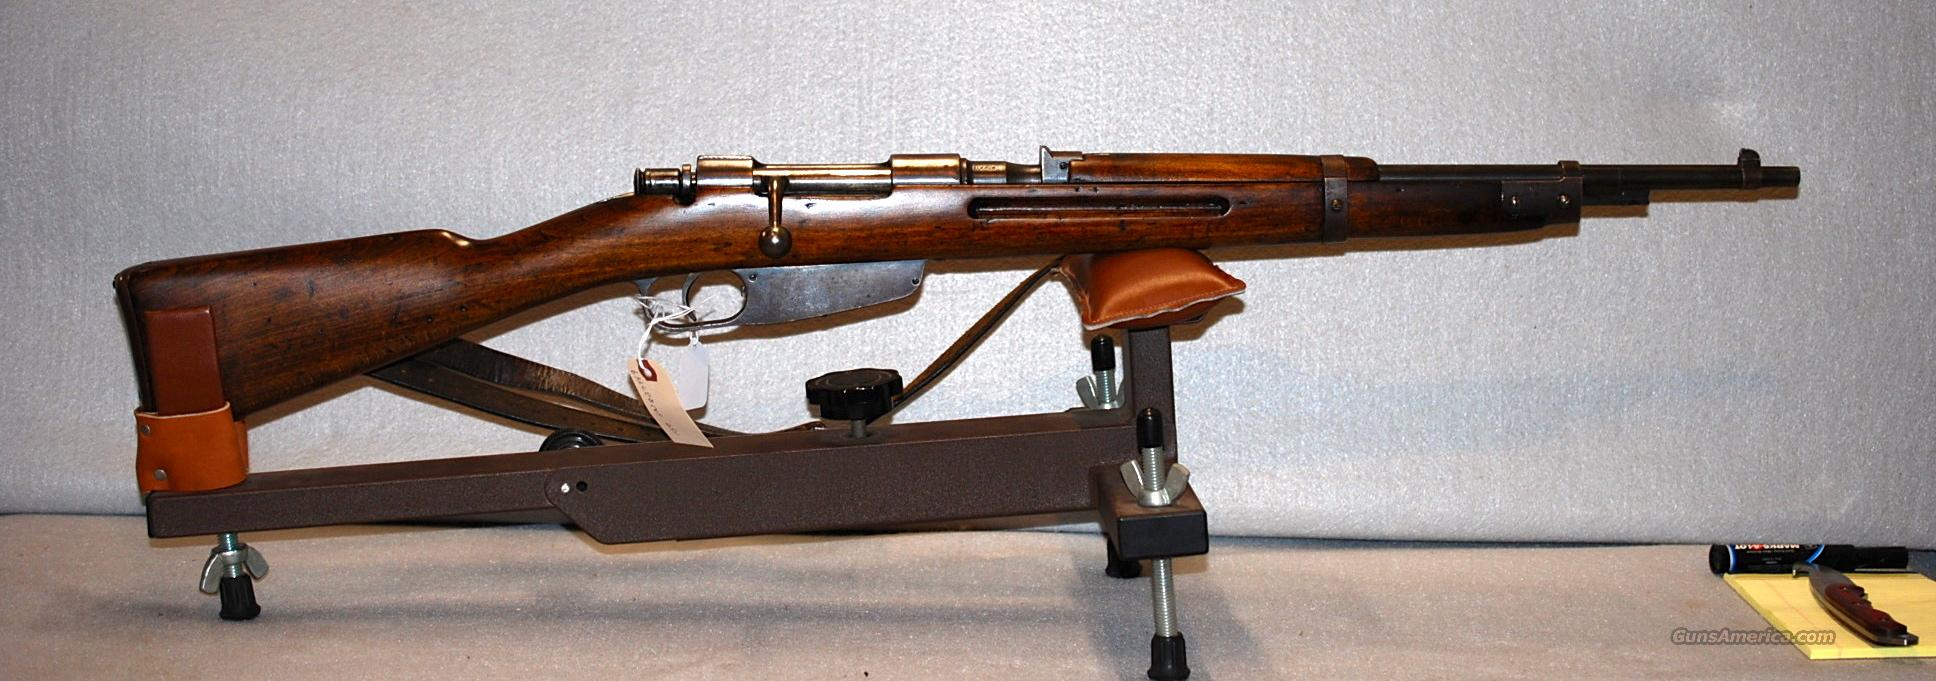 Italian Carcano Carbine 7.35  Guns > Rifles > Military Misc. Rifles Non-US > Other